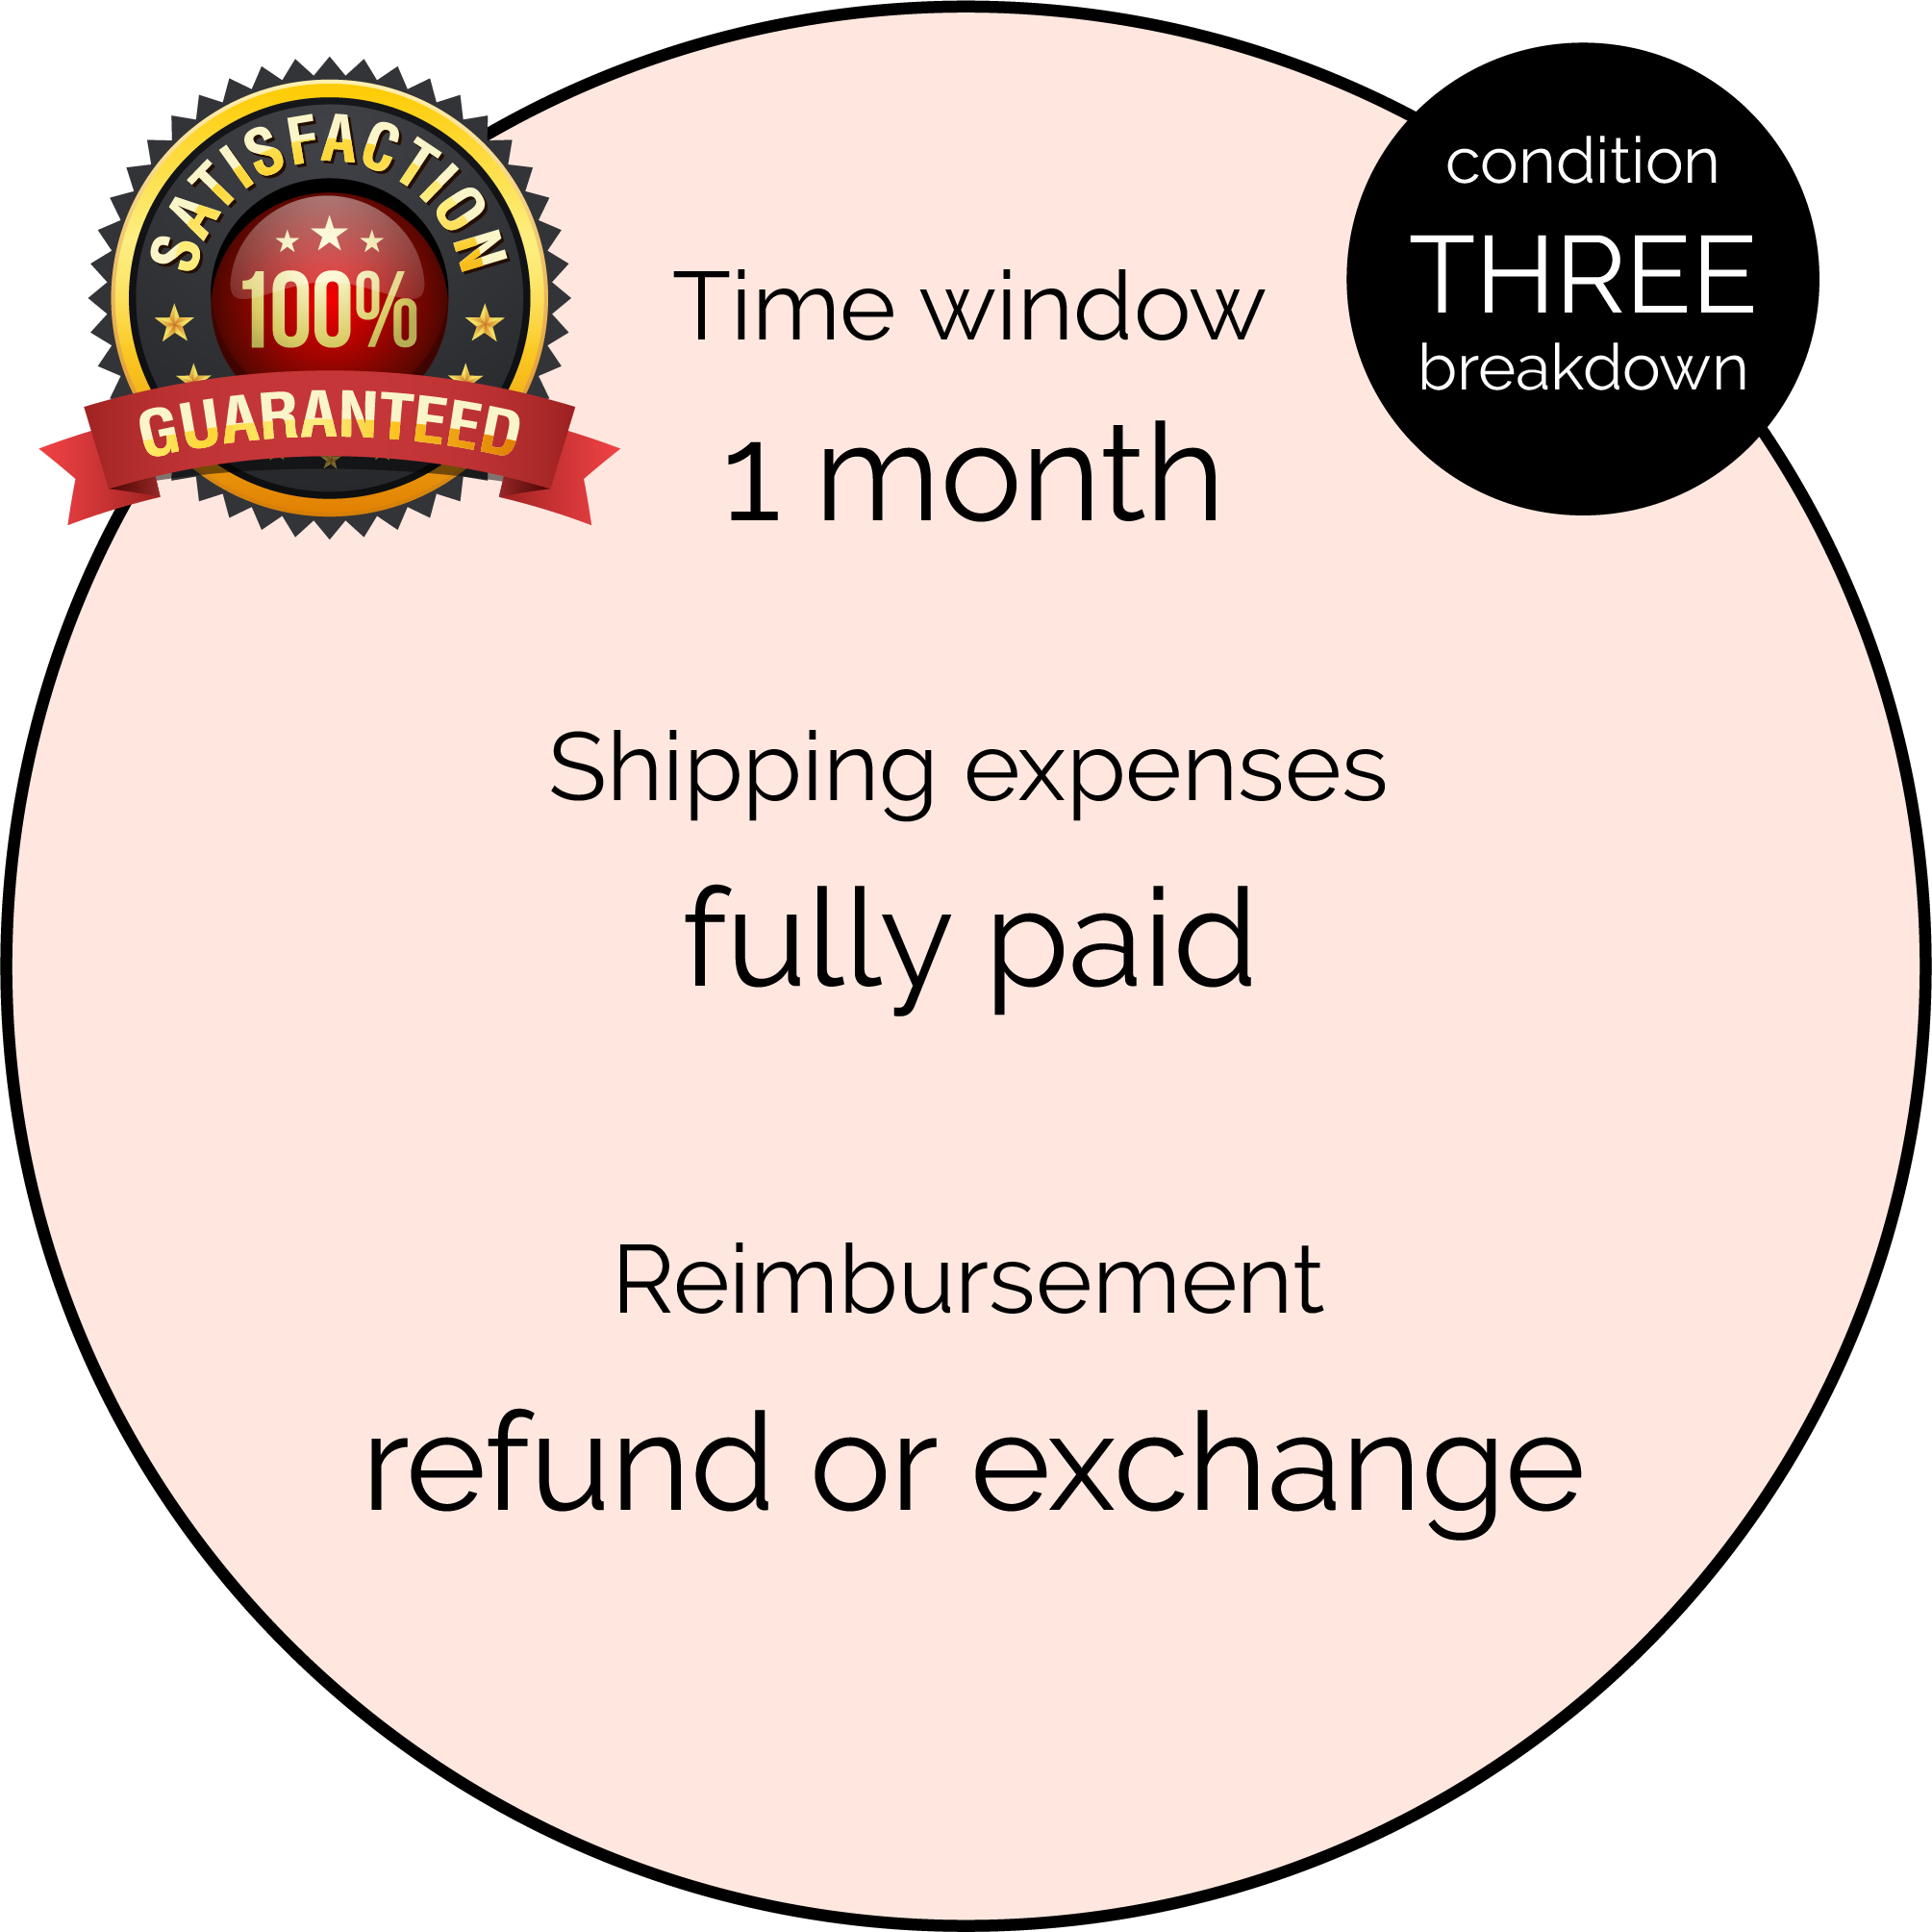 Condition three breakdown - Time window: 1 month, Shipping expenses: fully paid, Reimbursement: refund or exchange.